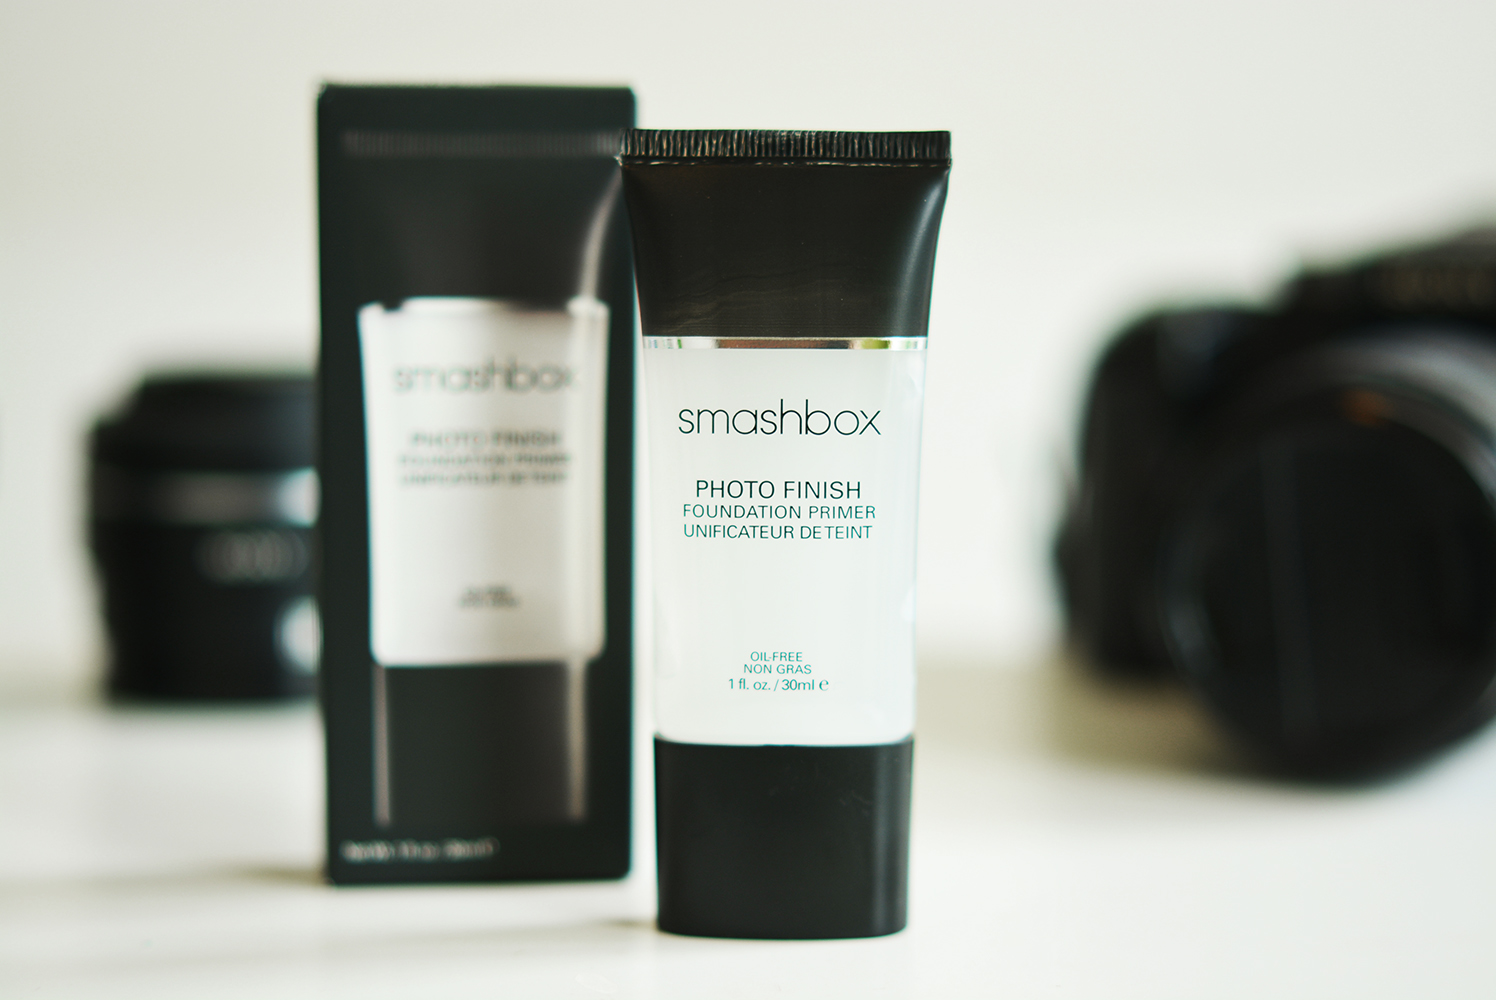 Smashbox Photo Finish Foundation Primer